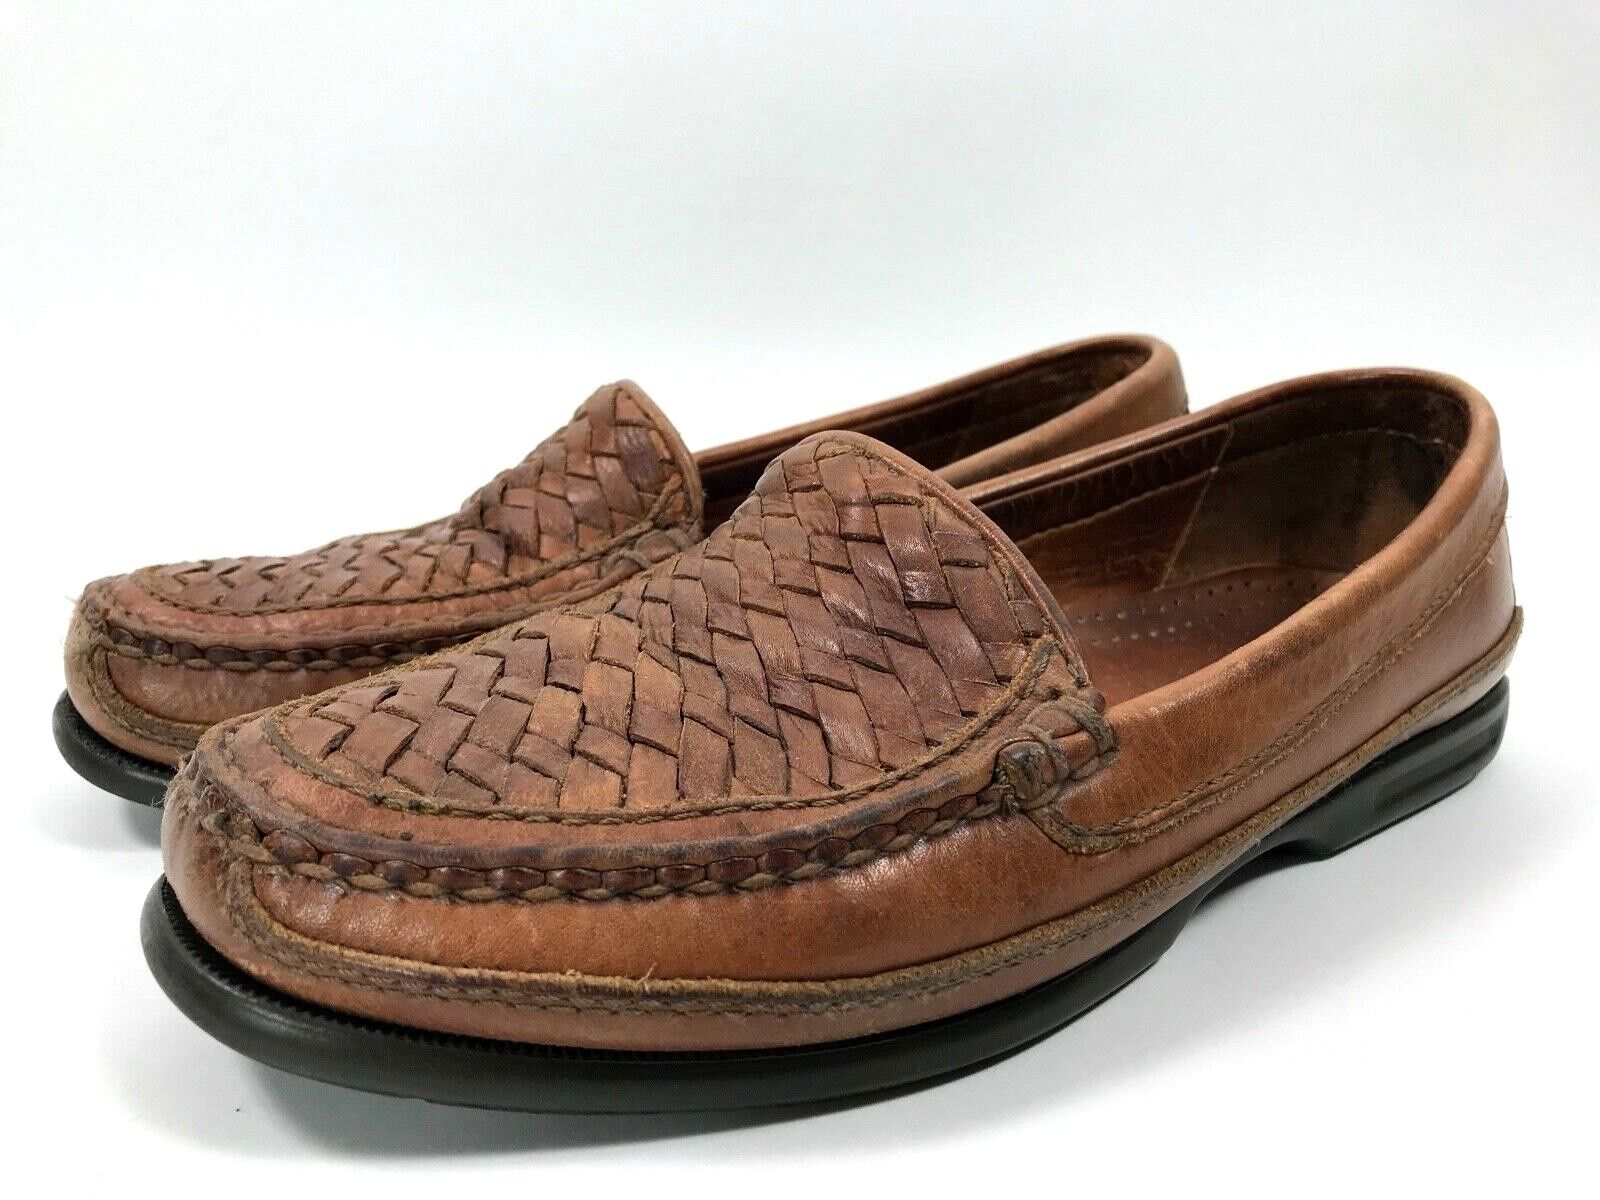 Johnston Murphy Passport Weave Woven Leather Loafers shoes Men Size 8 M 20-8319